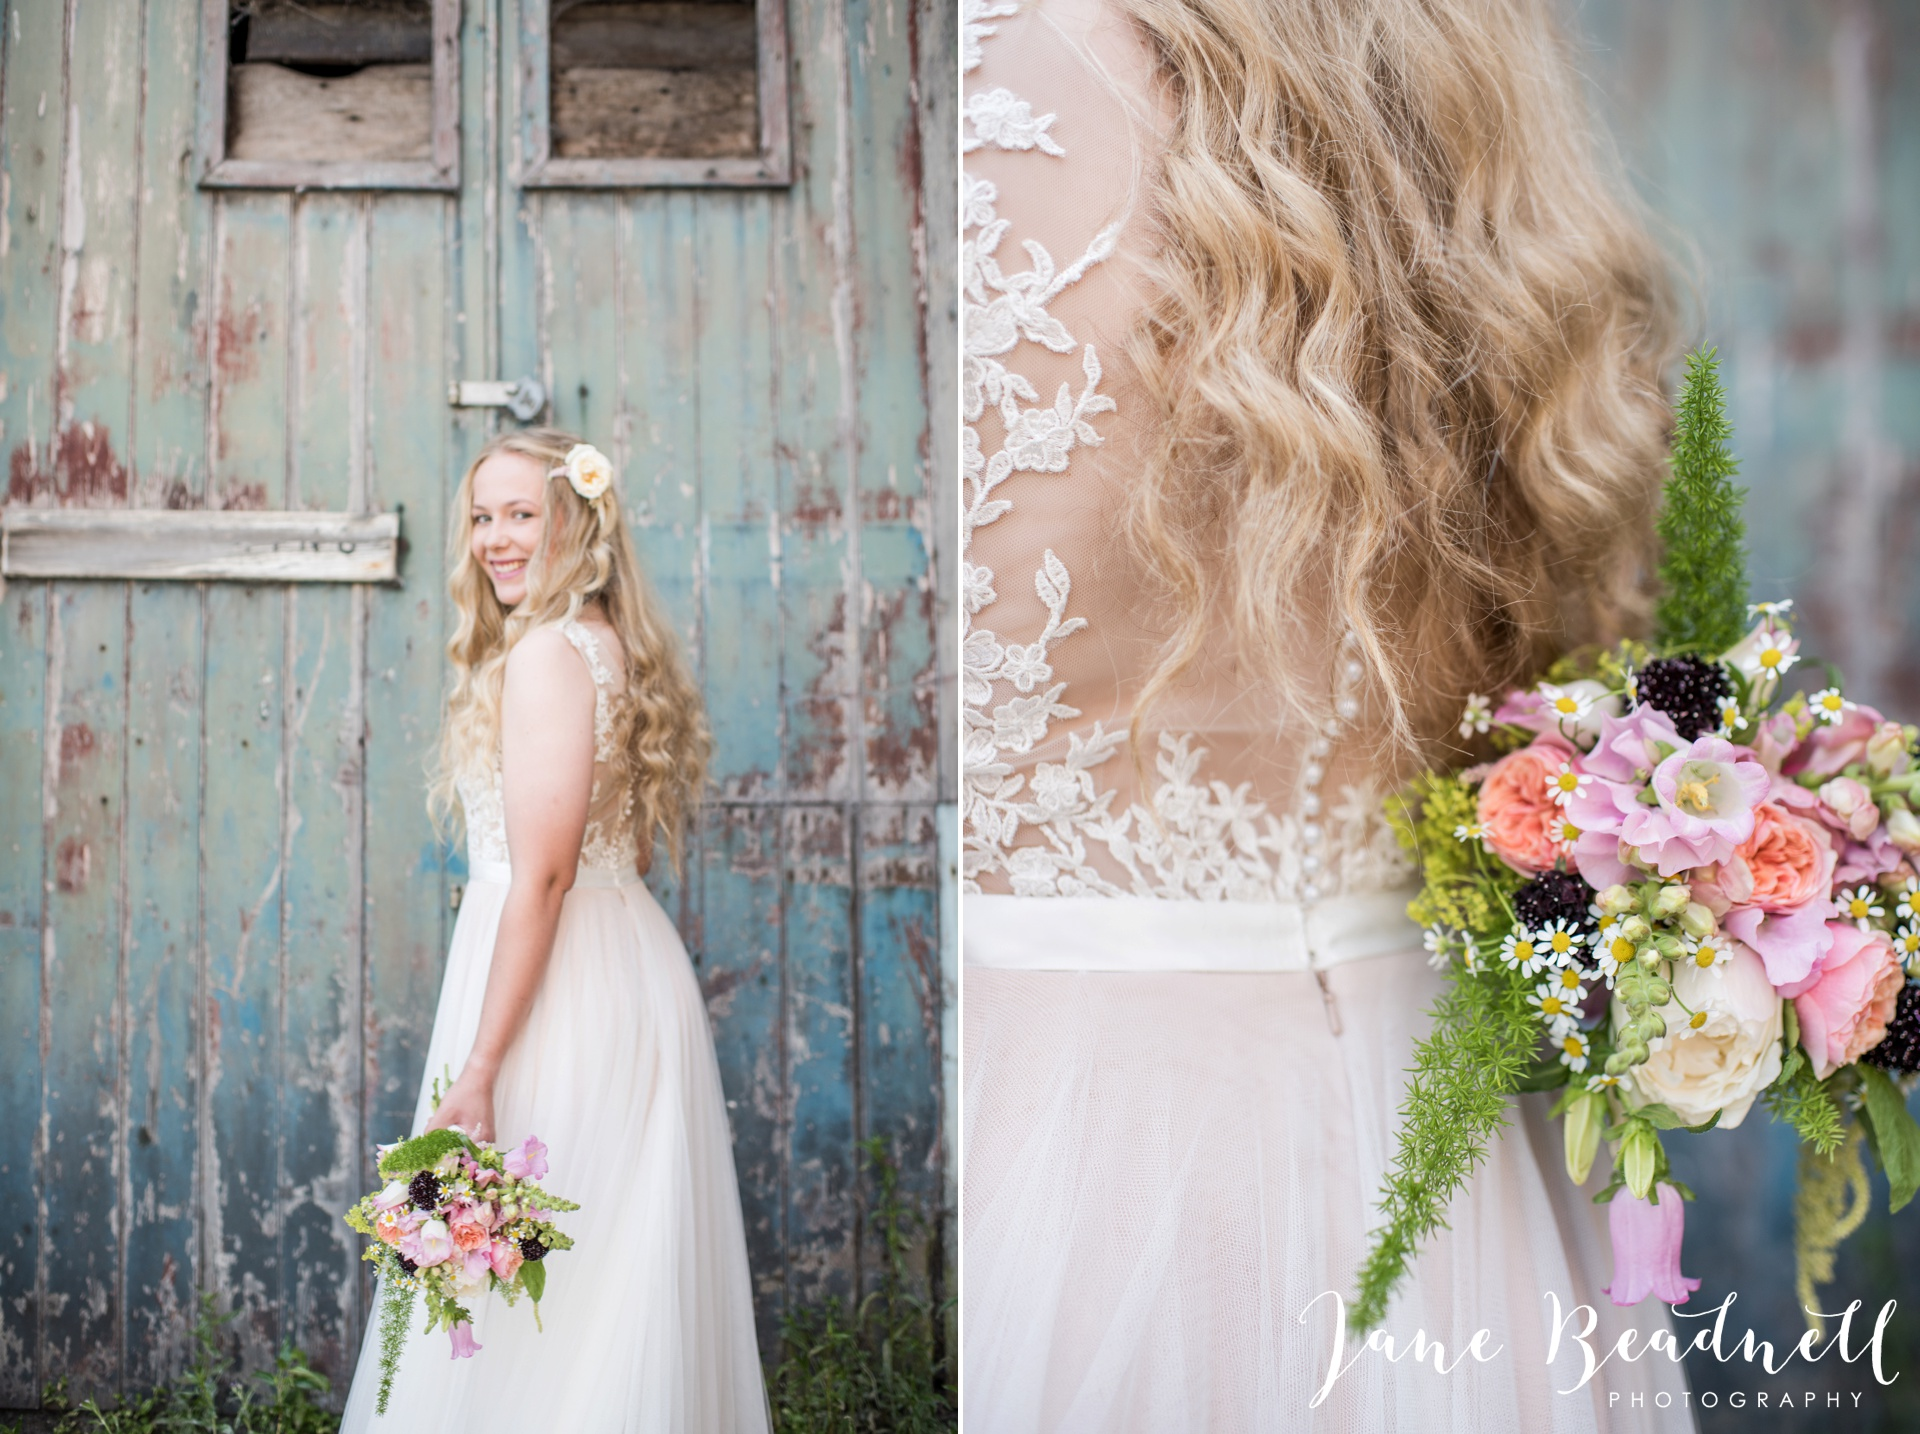 Fine art wedding photography by Jane Beadnell Photography Leafy Couture wedding flowers_0042